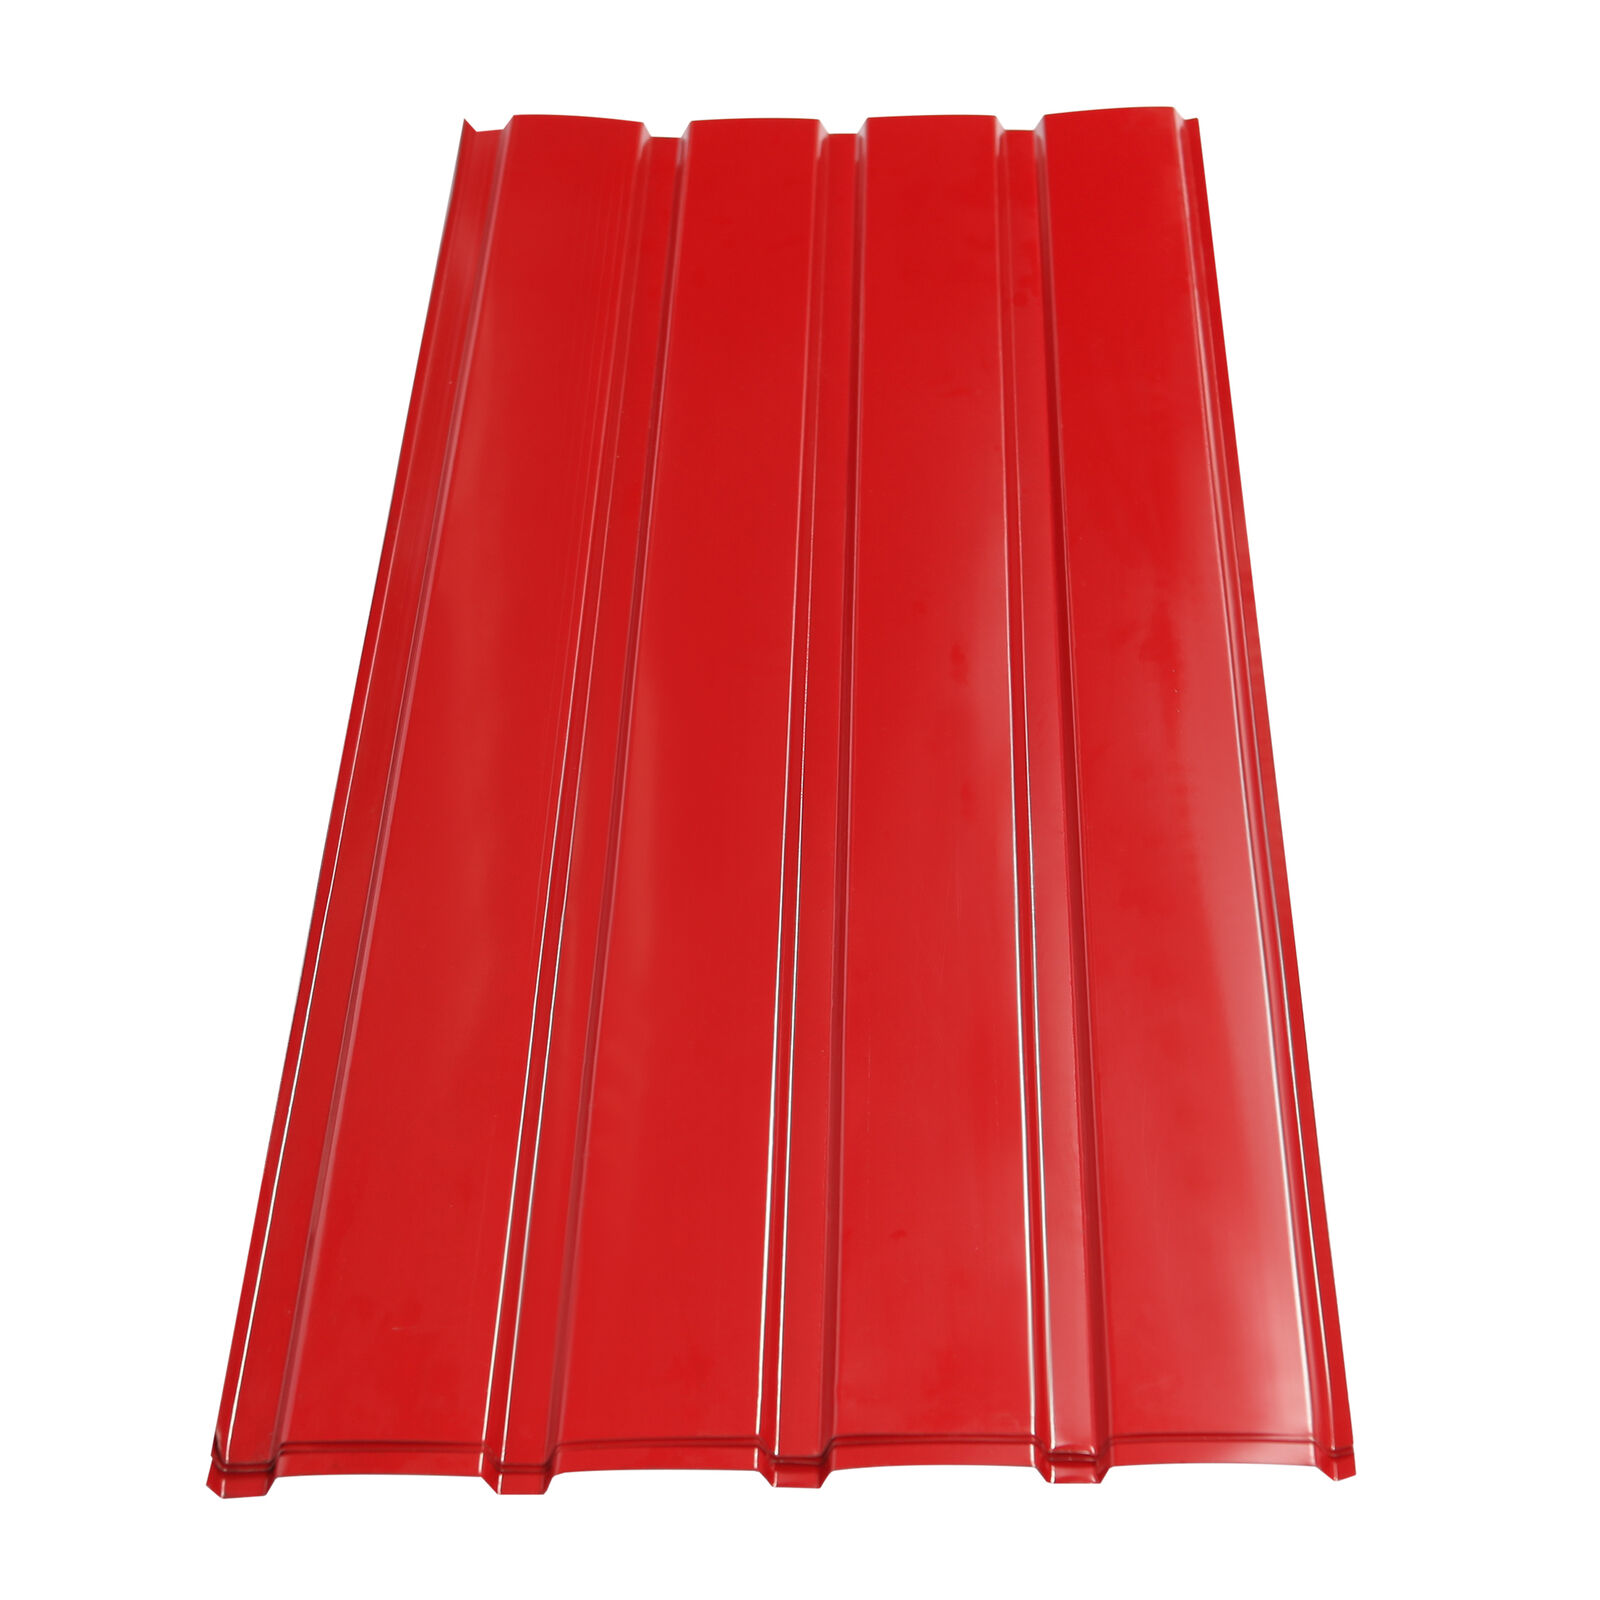 12 PCS Red Roof Sheets Corrugated Profile Galvanized Metal Roofing Carport